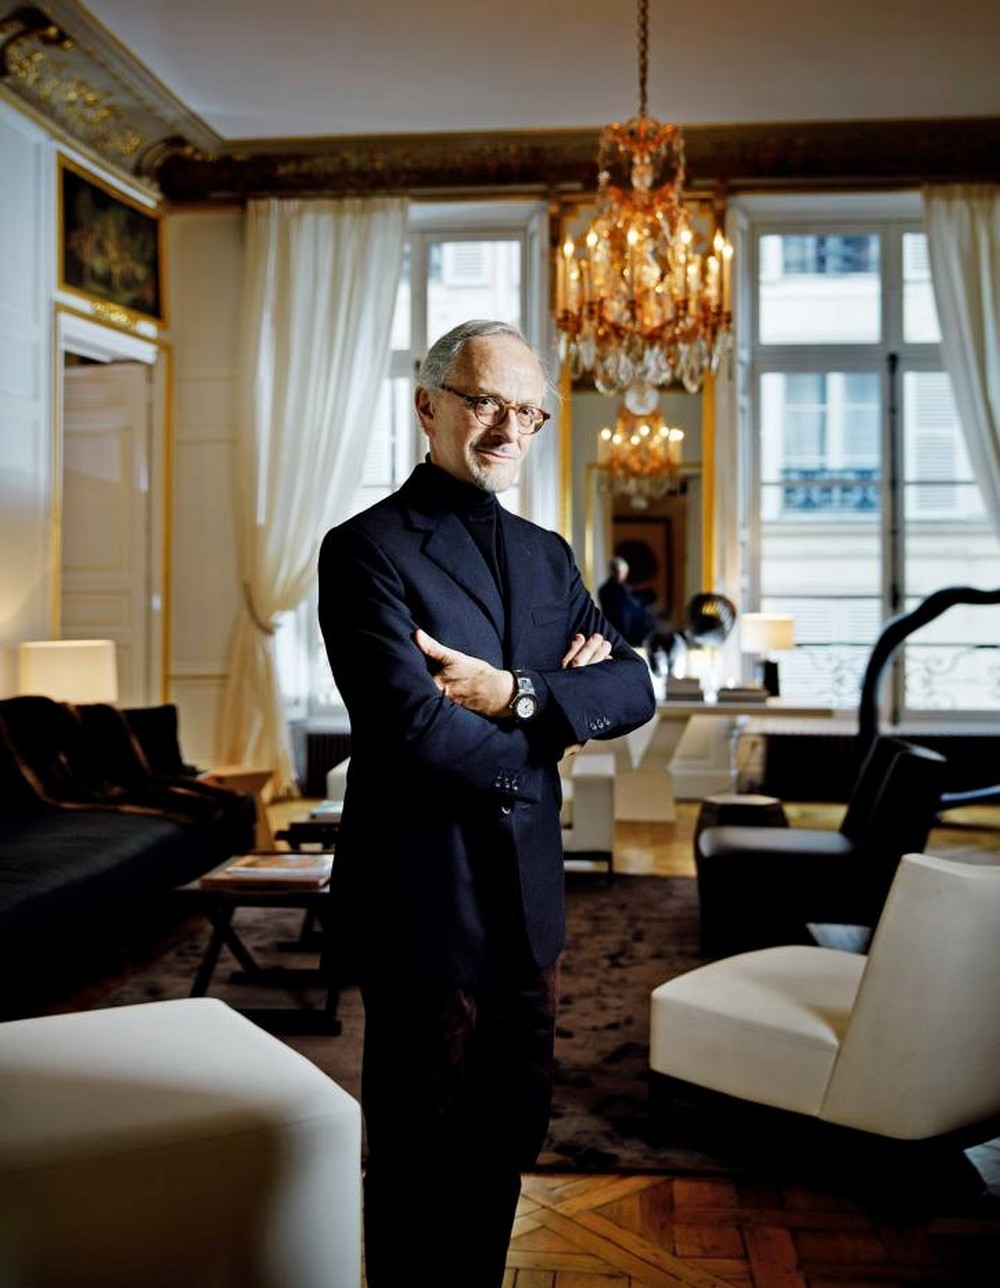 Top 20 French Interior Designers That Every Design Lover Must Know! french interior designers Top 20 French Interior Designers That Every Design Lover Must Know! Top 20 French Interior Designers That Every Design Lover Must Know 2